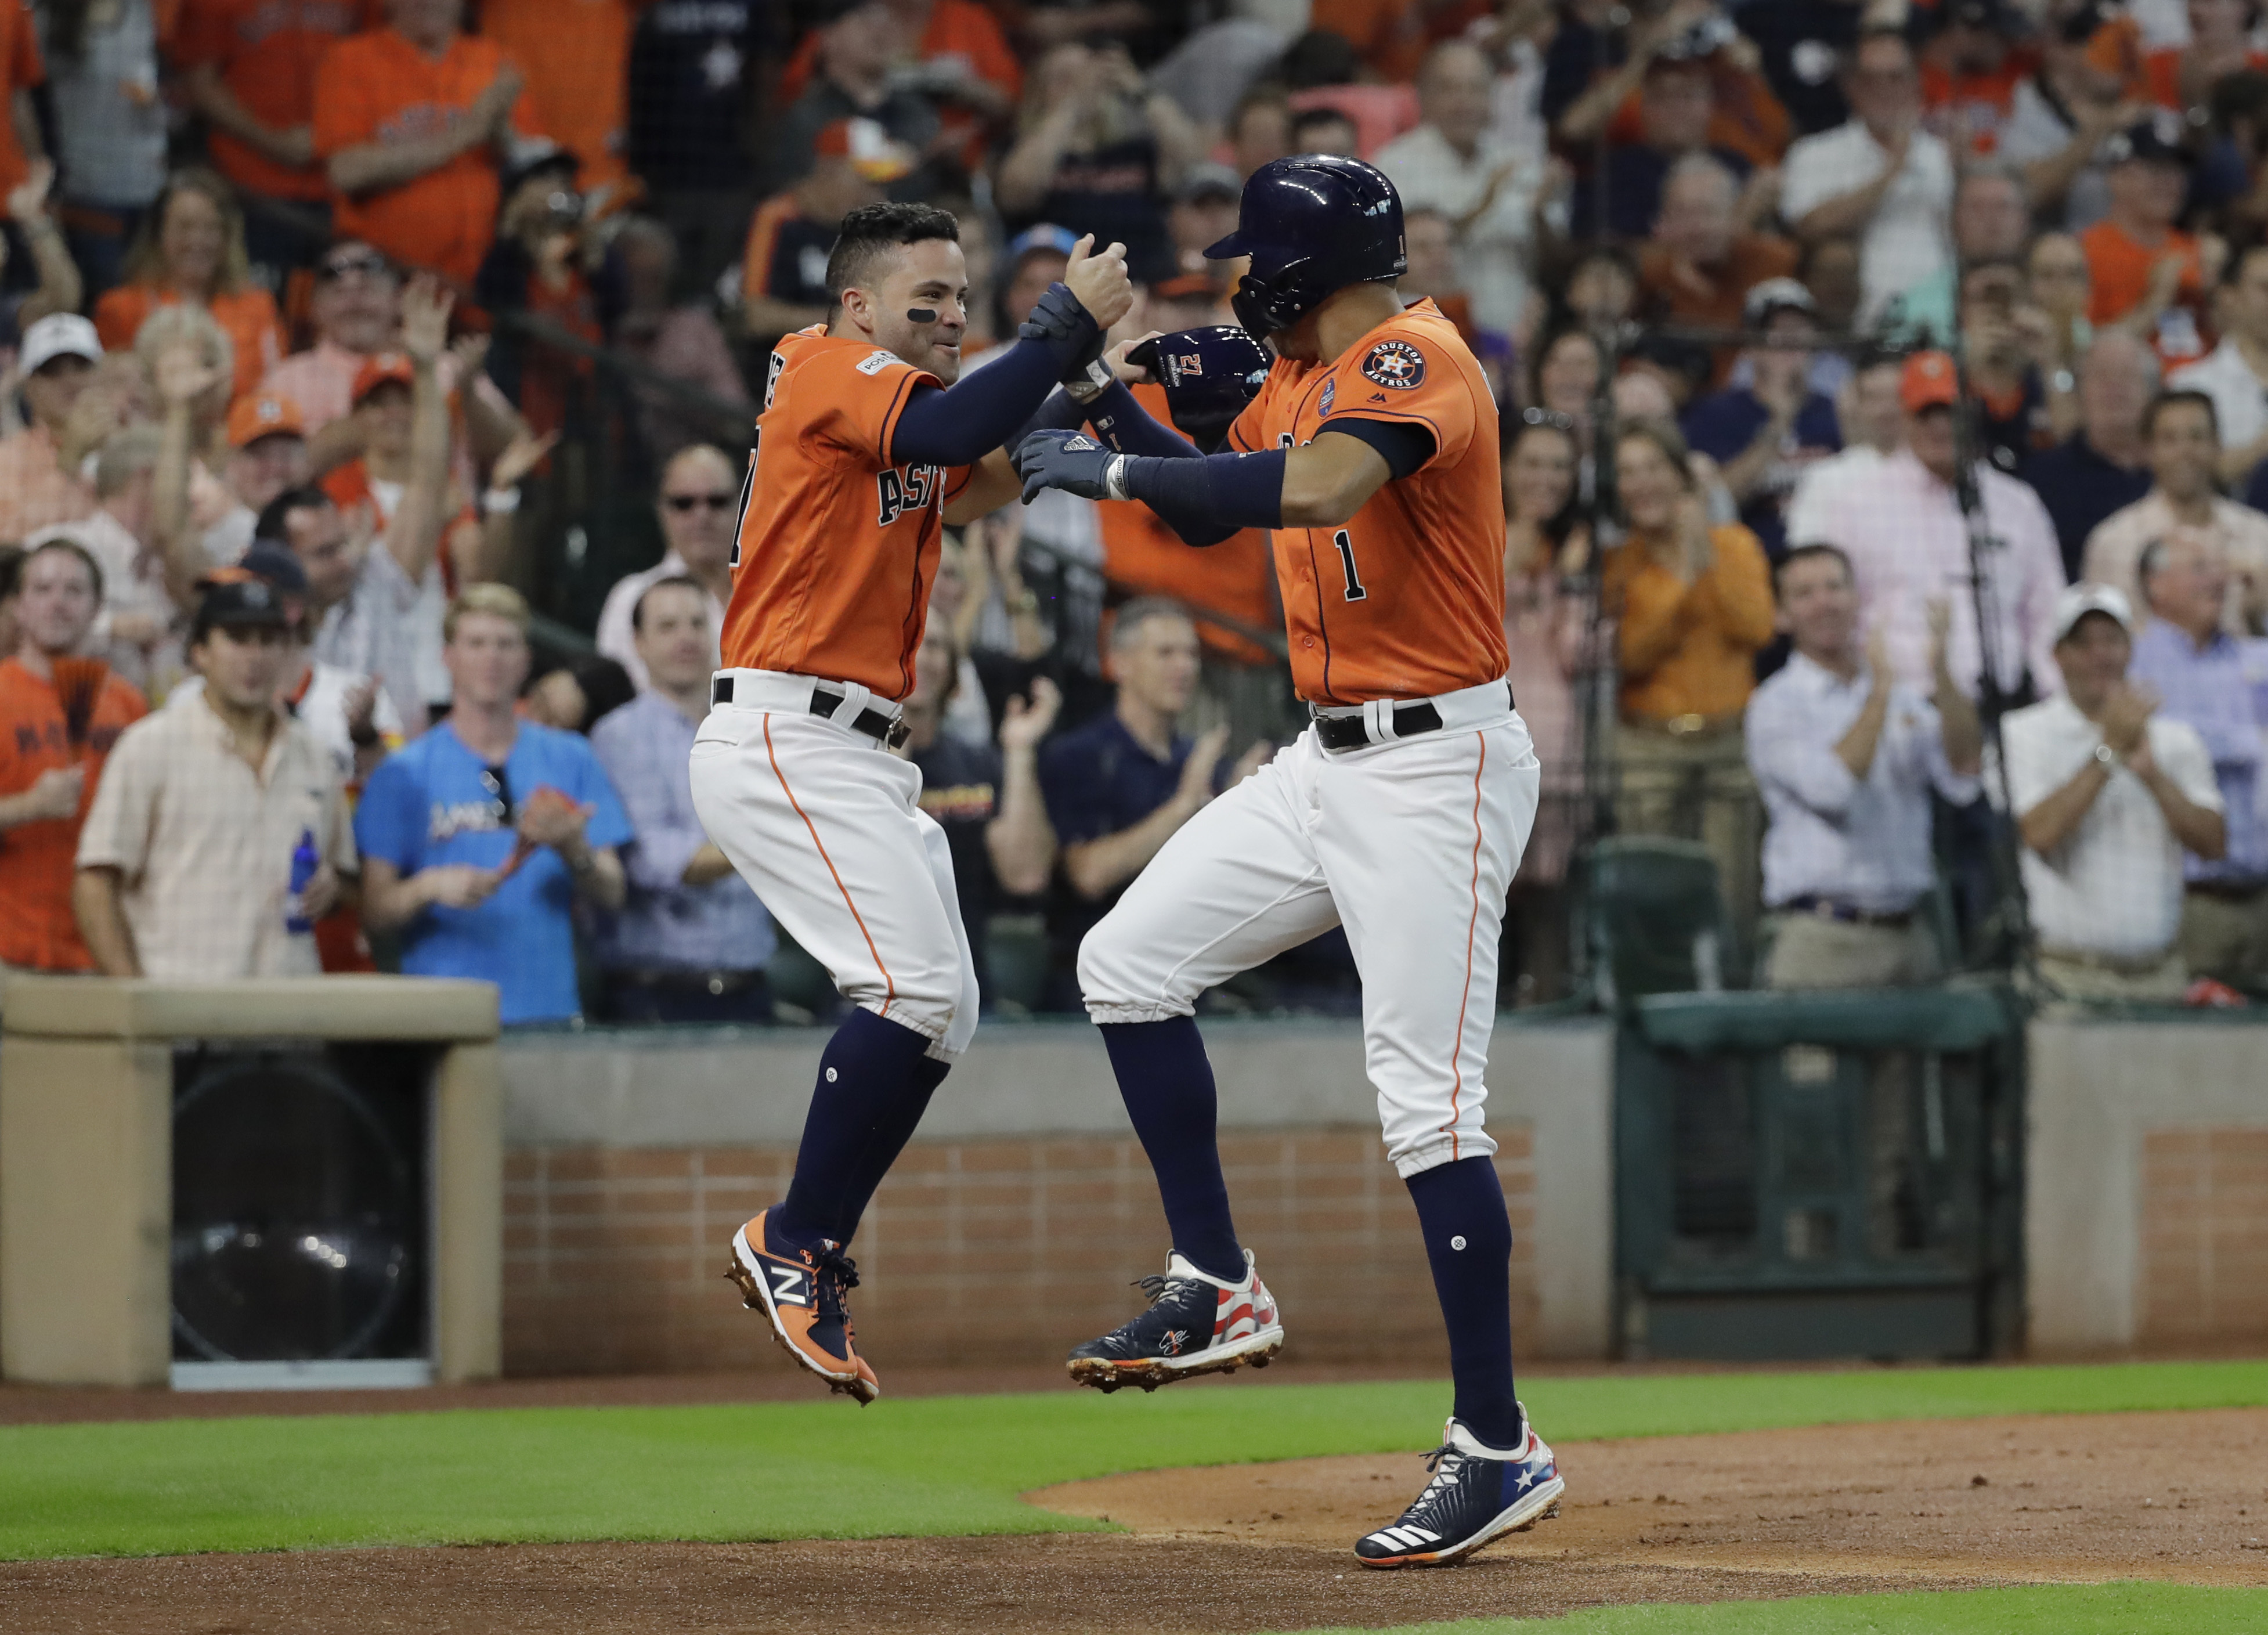 <div class='meta'><div class='origin-logo' data-origin='AP'></div><span class='caption-text' data-credit='David J. Phillip'>Houston Astros' Carlos Correa, right, celebrates his two-run home run with teammate Jose Altuve, left, during the first inning in Game 2.</span></div>